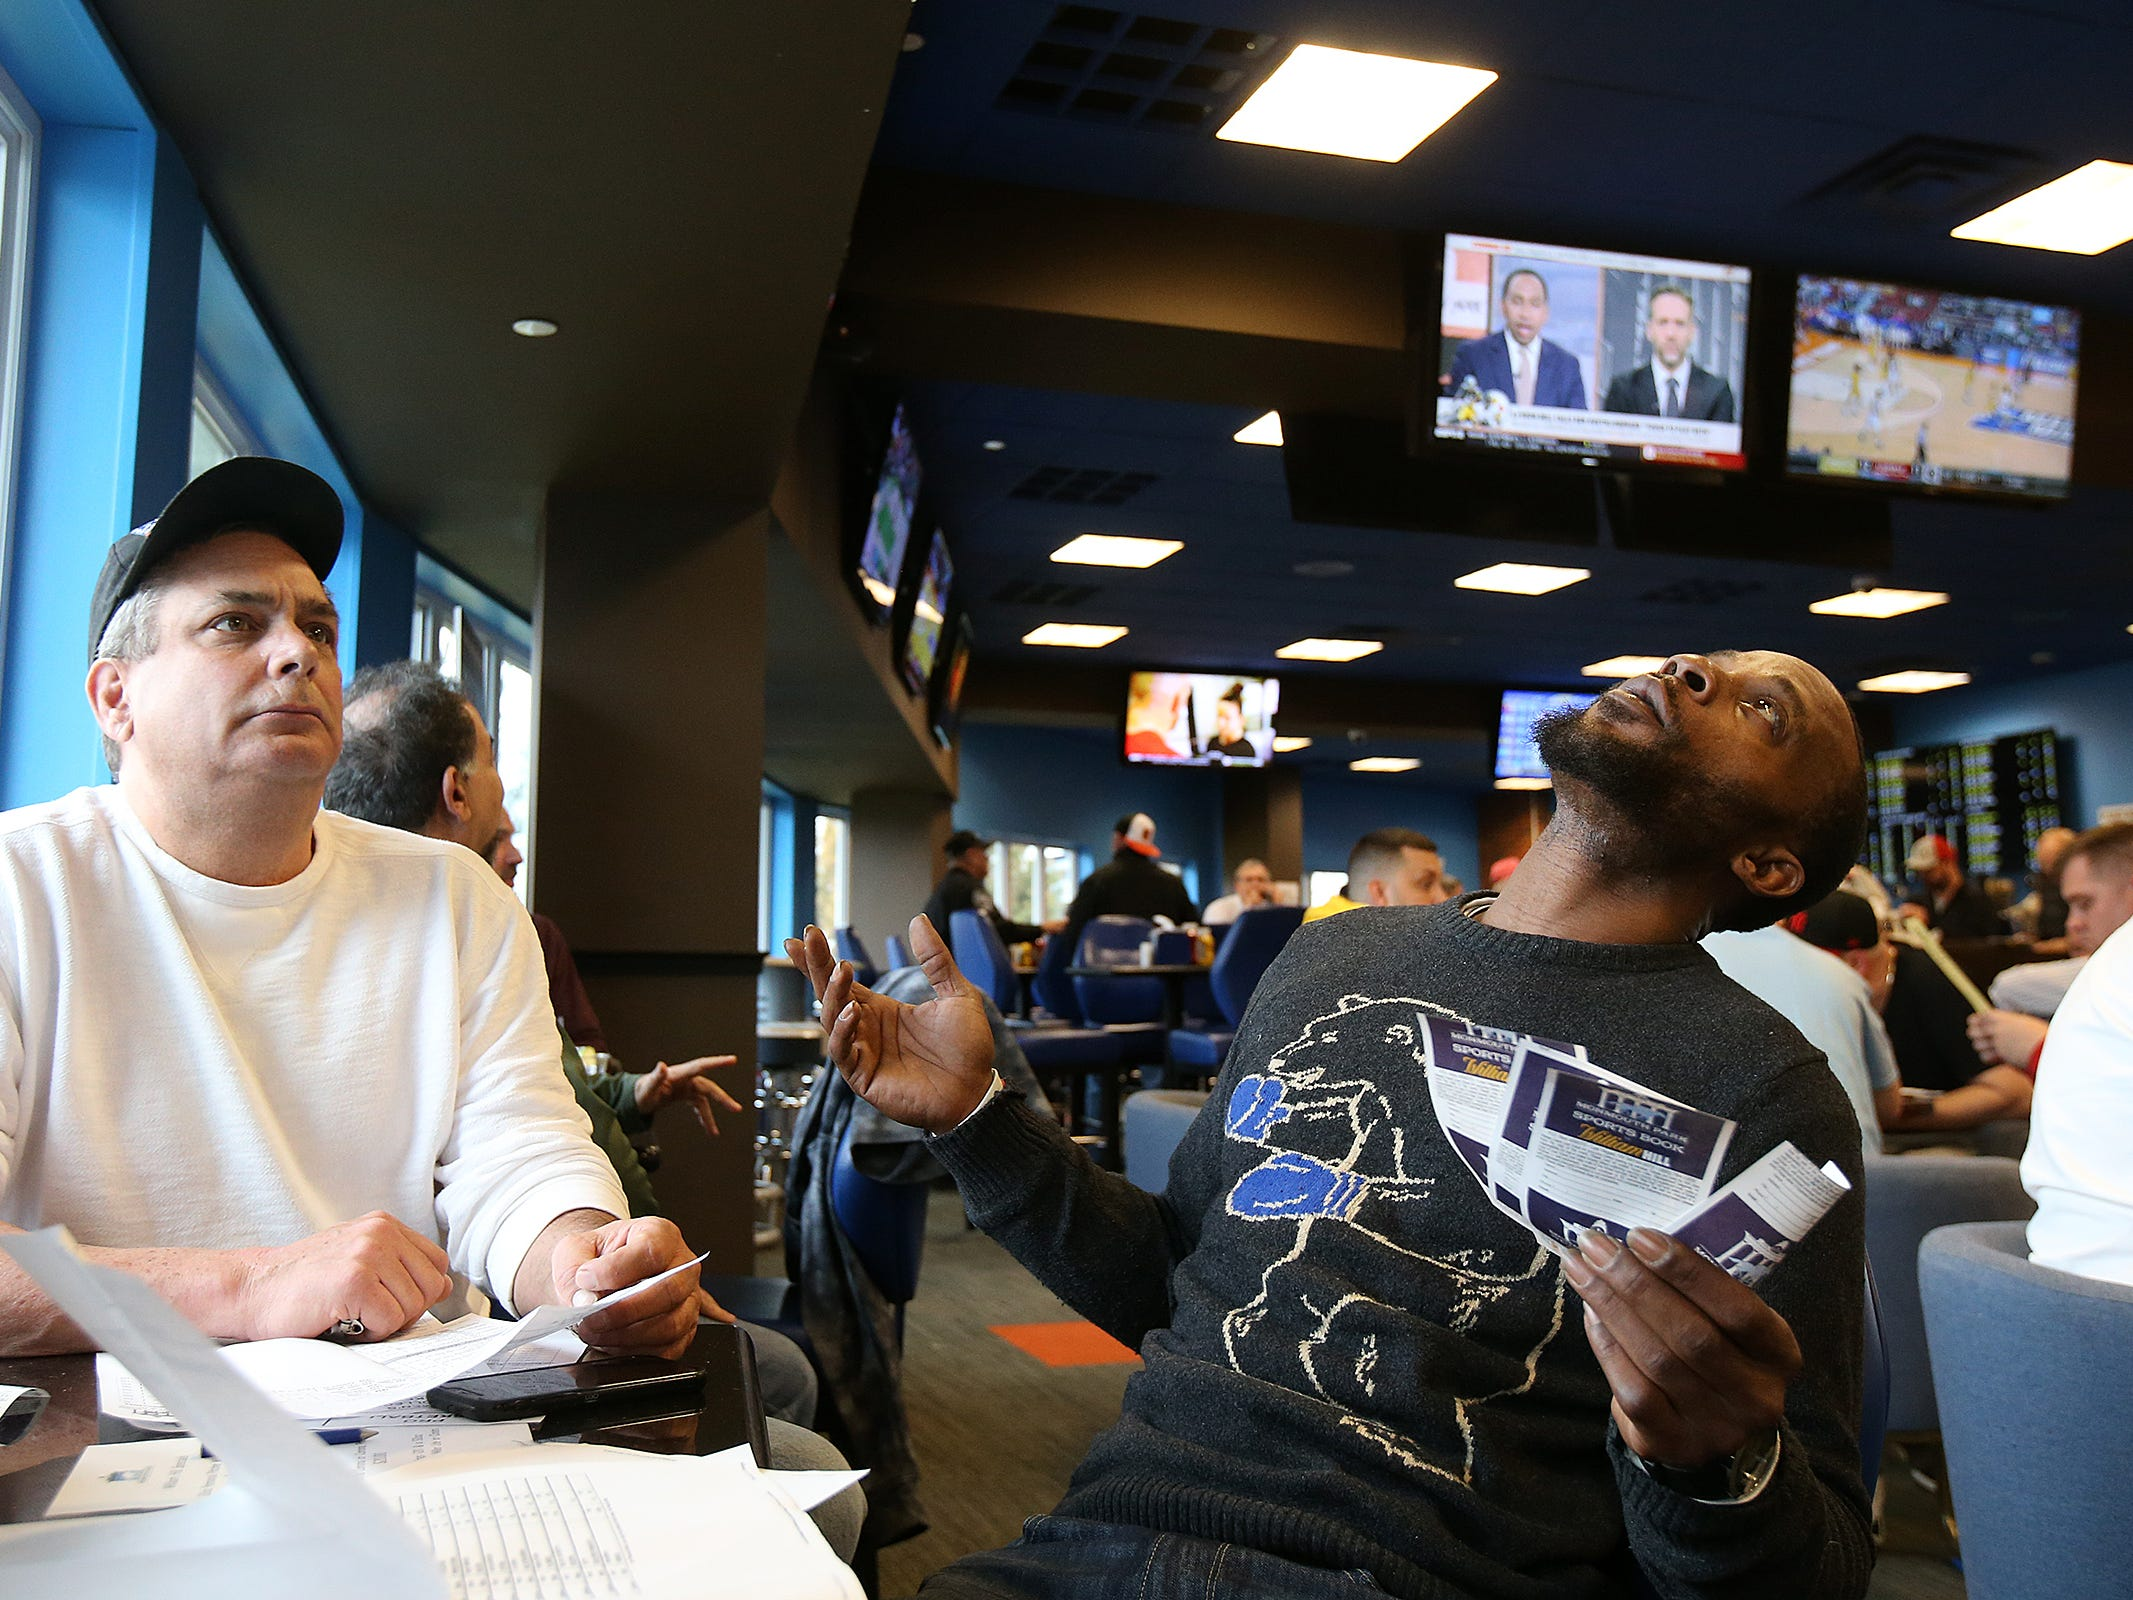 Tim Foley of Colts Neack and Charlie Rogers of Aberbeen, former NFL player, watch the Minnesota vs. Louisville game during March Madness, the NCAA men's college basketball tournament, at Monmouth Park's William Hill Race and Sports Bar in Oceanport, NJ Thursday March 21, 2019.